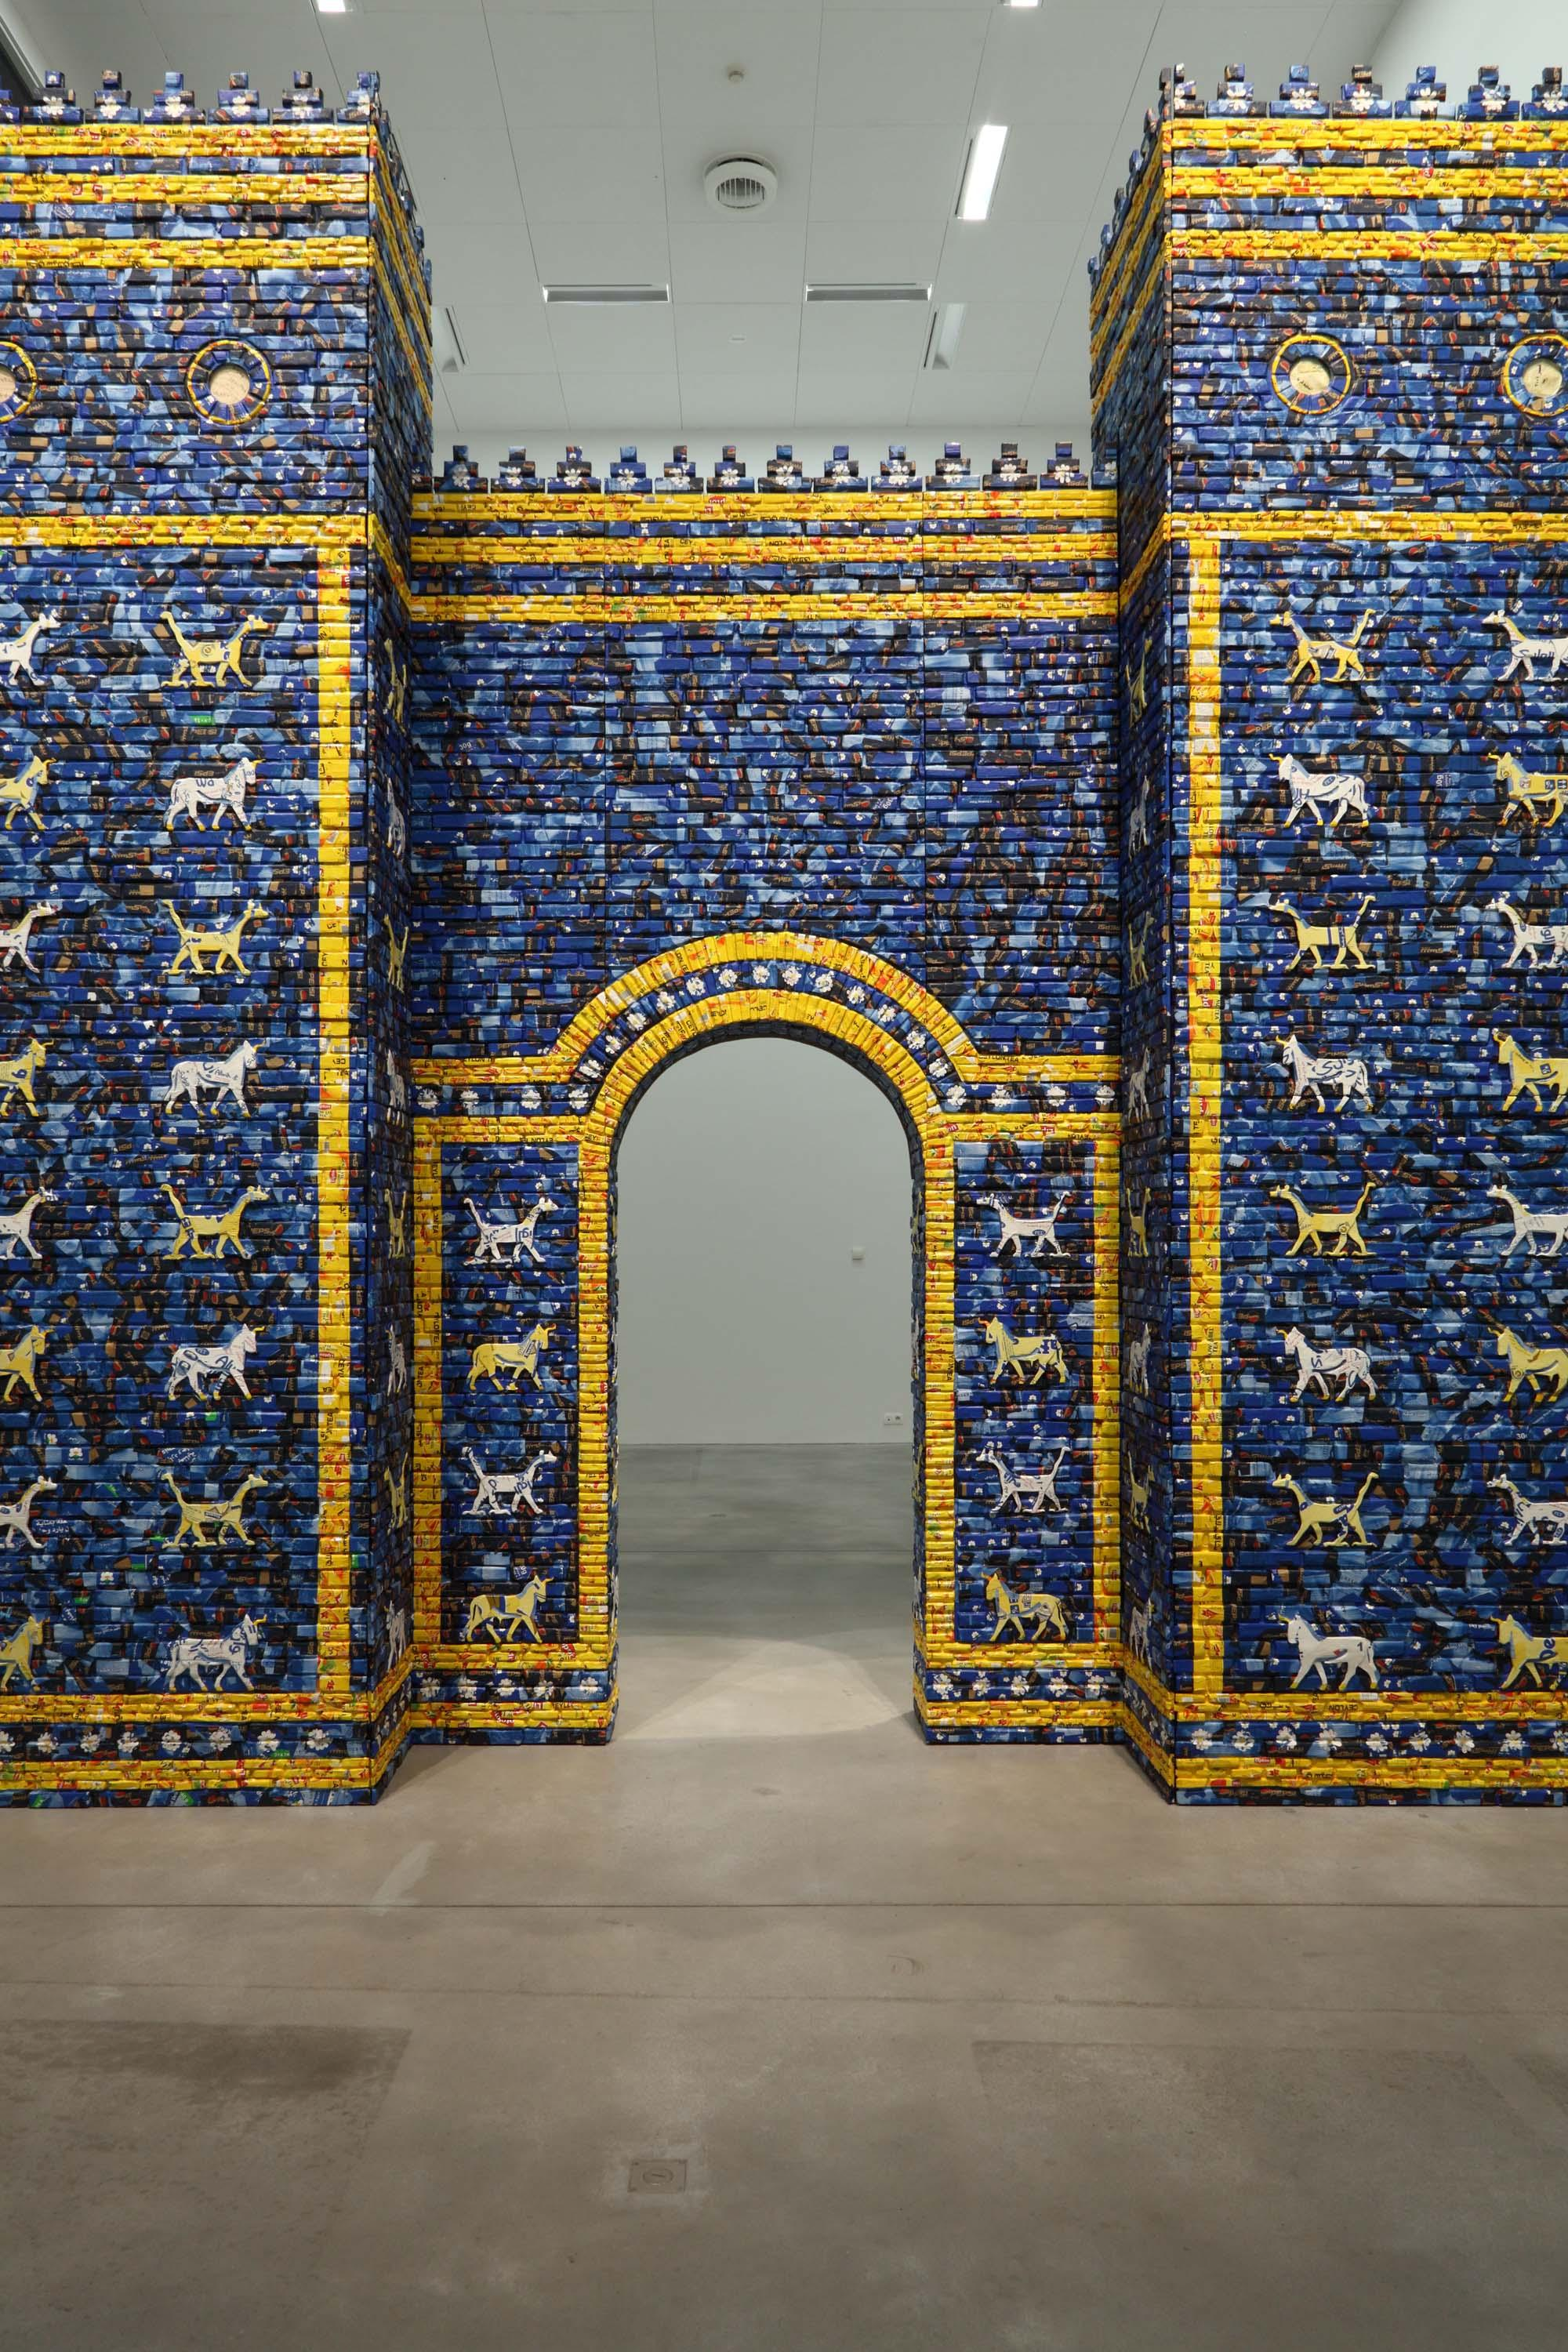 An architectural arched gateway is shown, installed within a modern gallery space. The arch is made from bricks in a range of different blues with golden yellow accents and decorated with stylized animals.